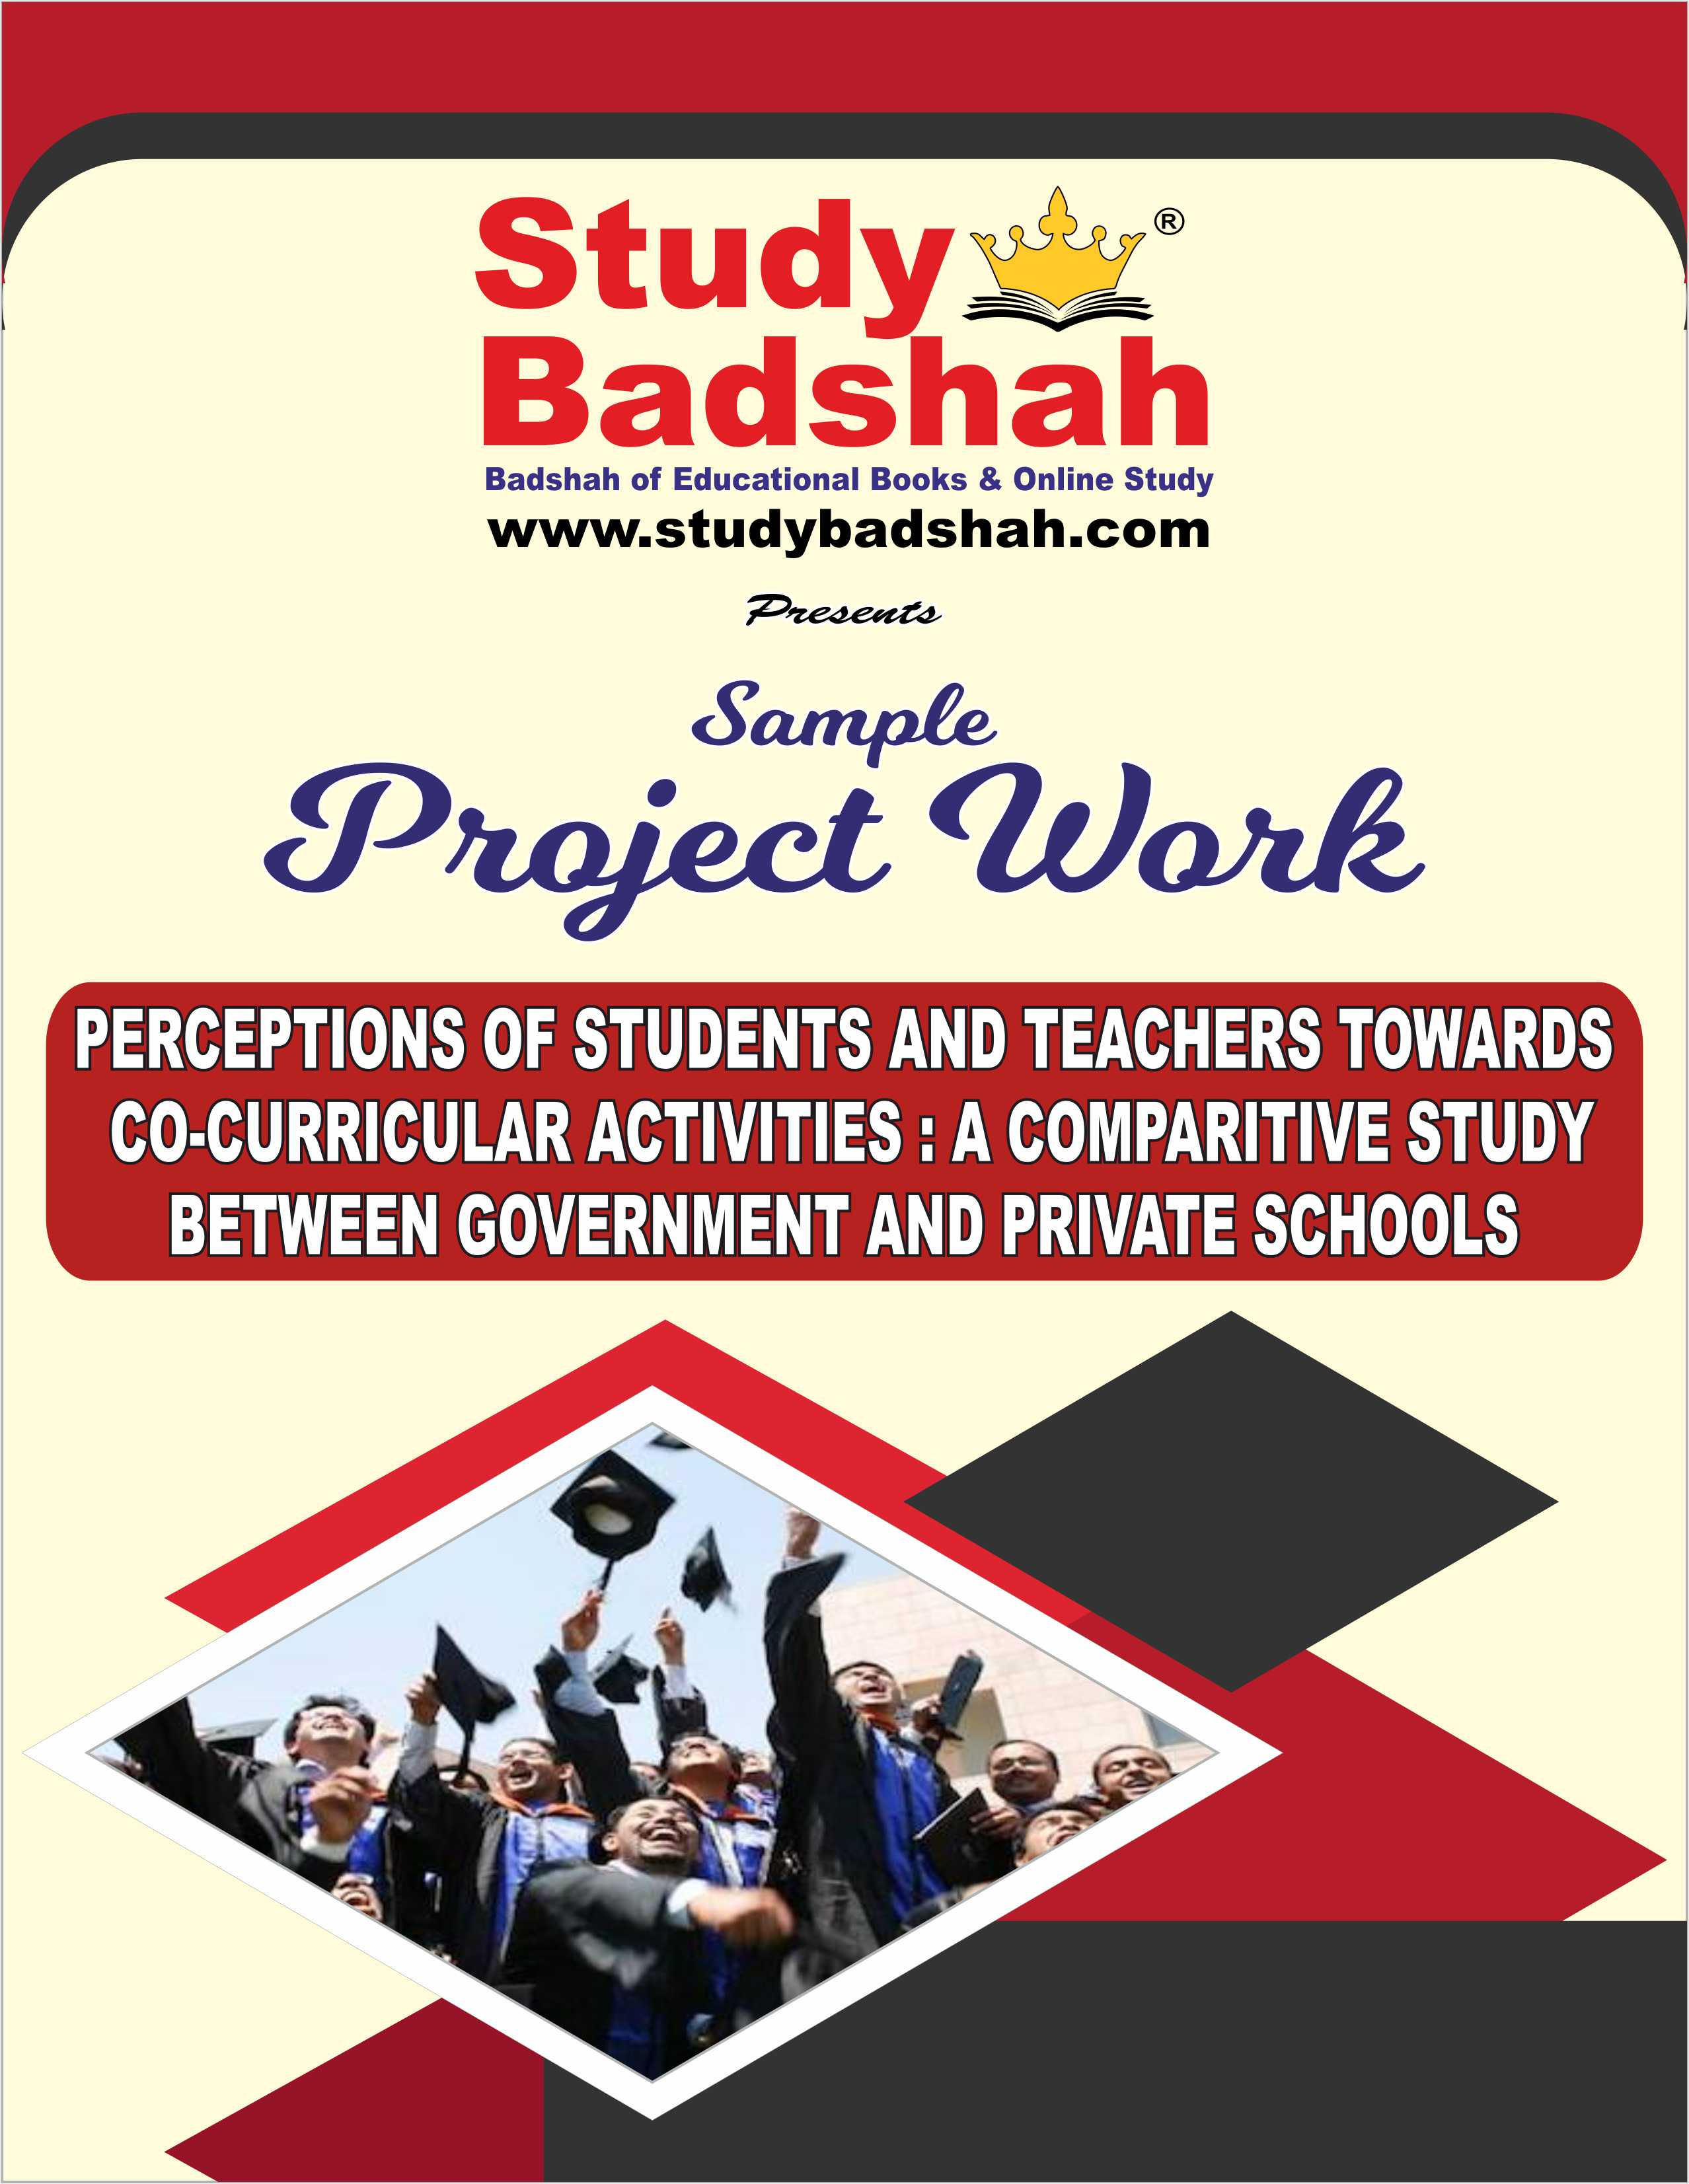 Perceptions of Students and Teachers Towards Co-curricular Activities A Comparitive Study Between Government and Private Schools